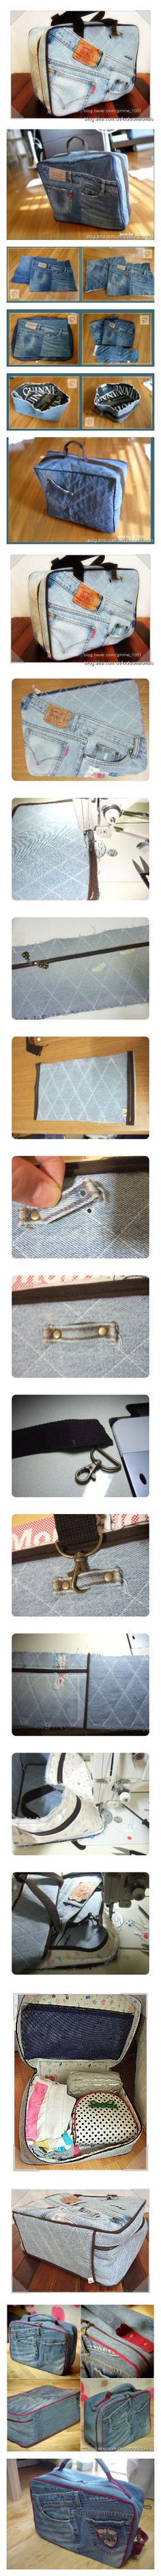 Turn an old pair of jeans into a suitcase